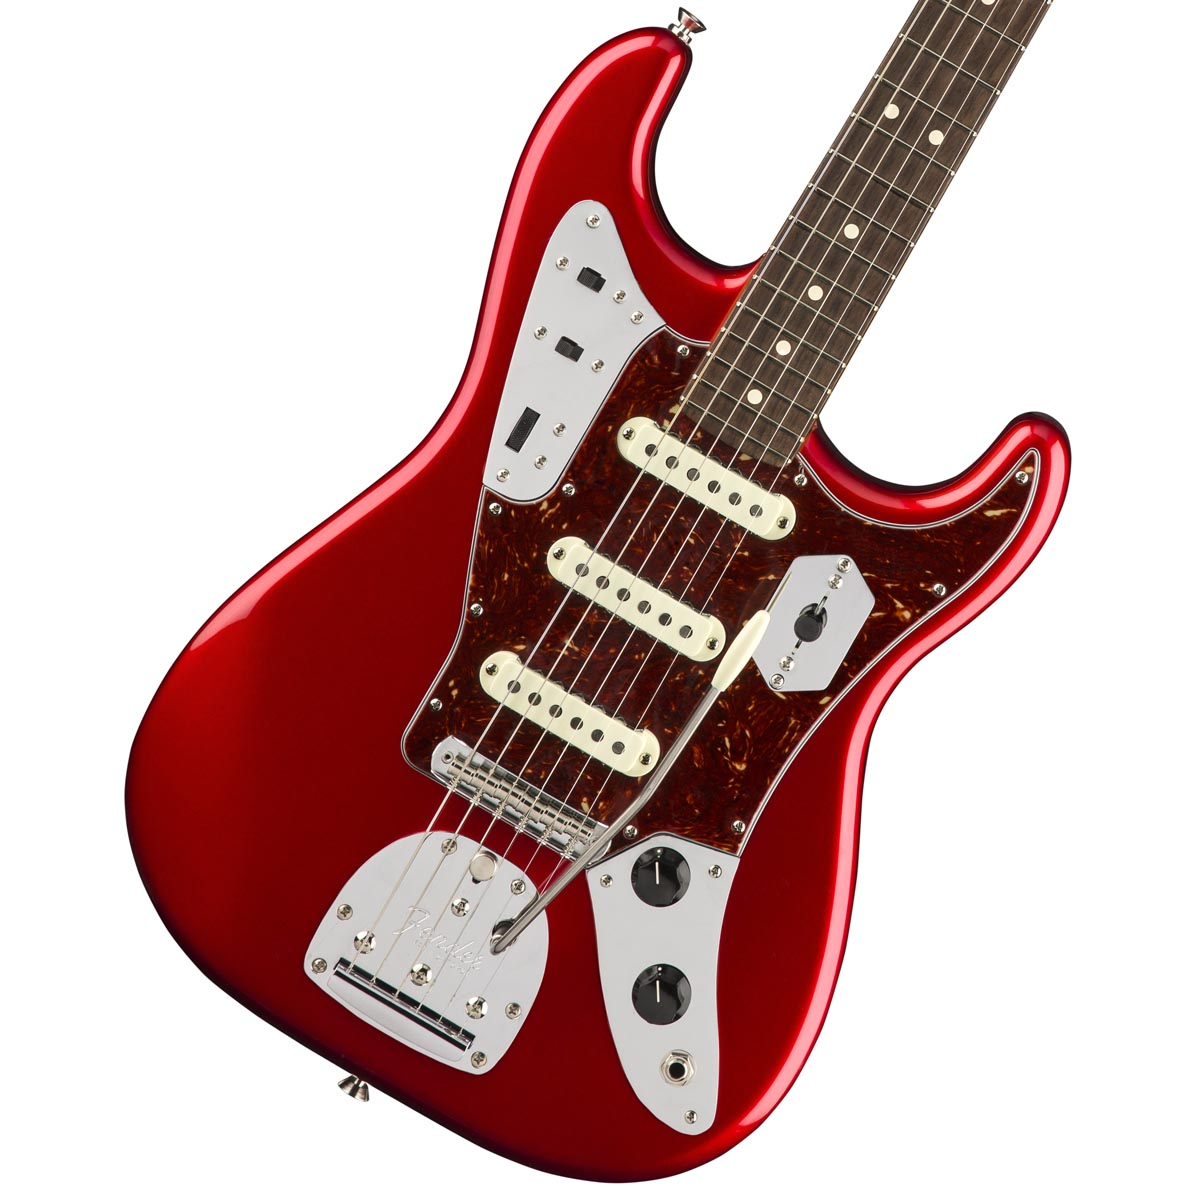 Fender USA / Parallel Universe Limited Edition Jaguar Strat Candy Apple Red フェンダー 《予約注文/近日入荷予定》【御茶ノ水本店】